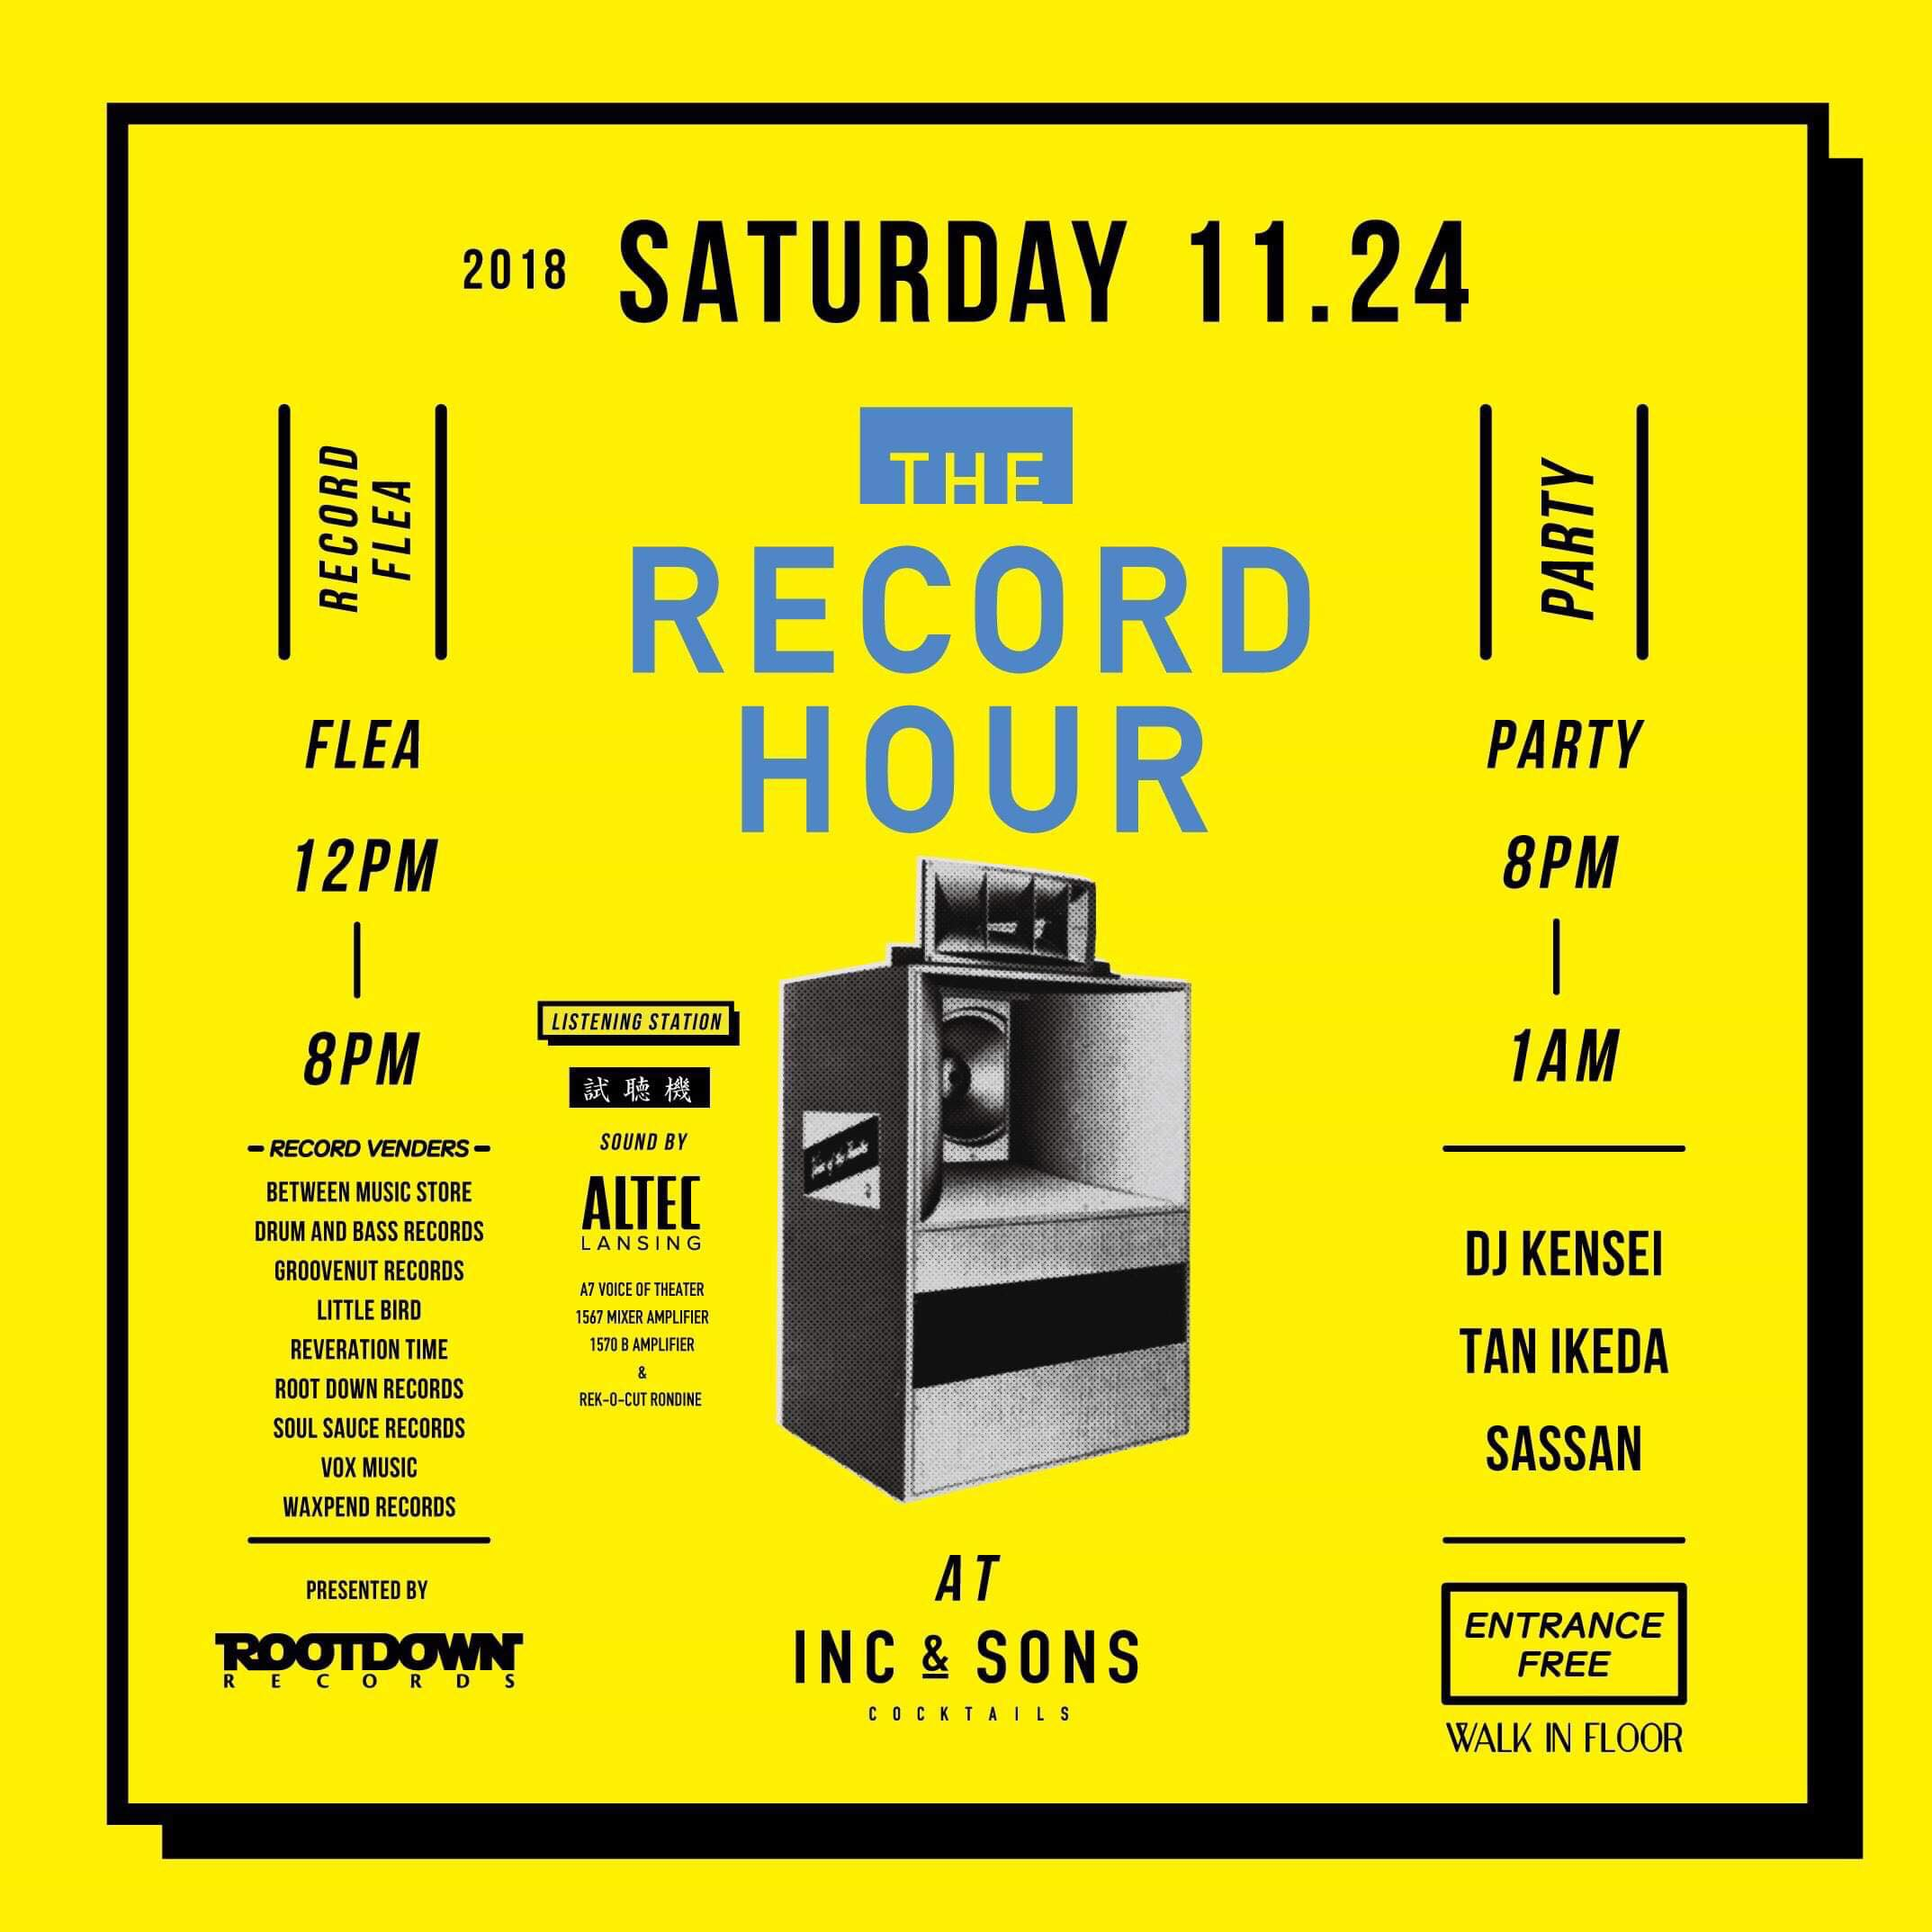 the-record-hour-at-inc-and-sons-18-11-24-sat001